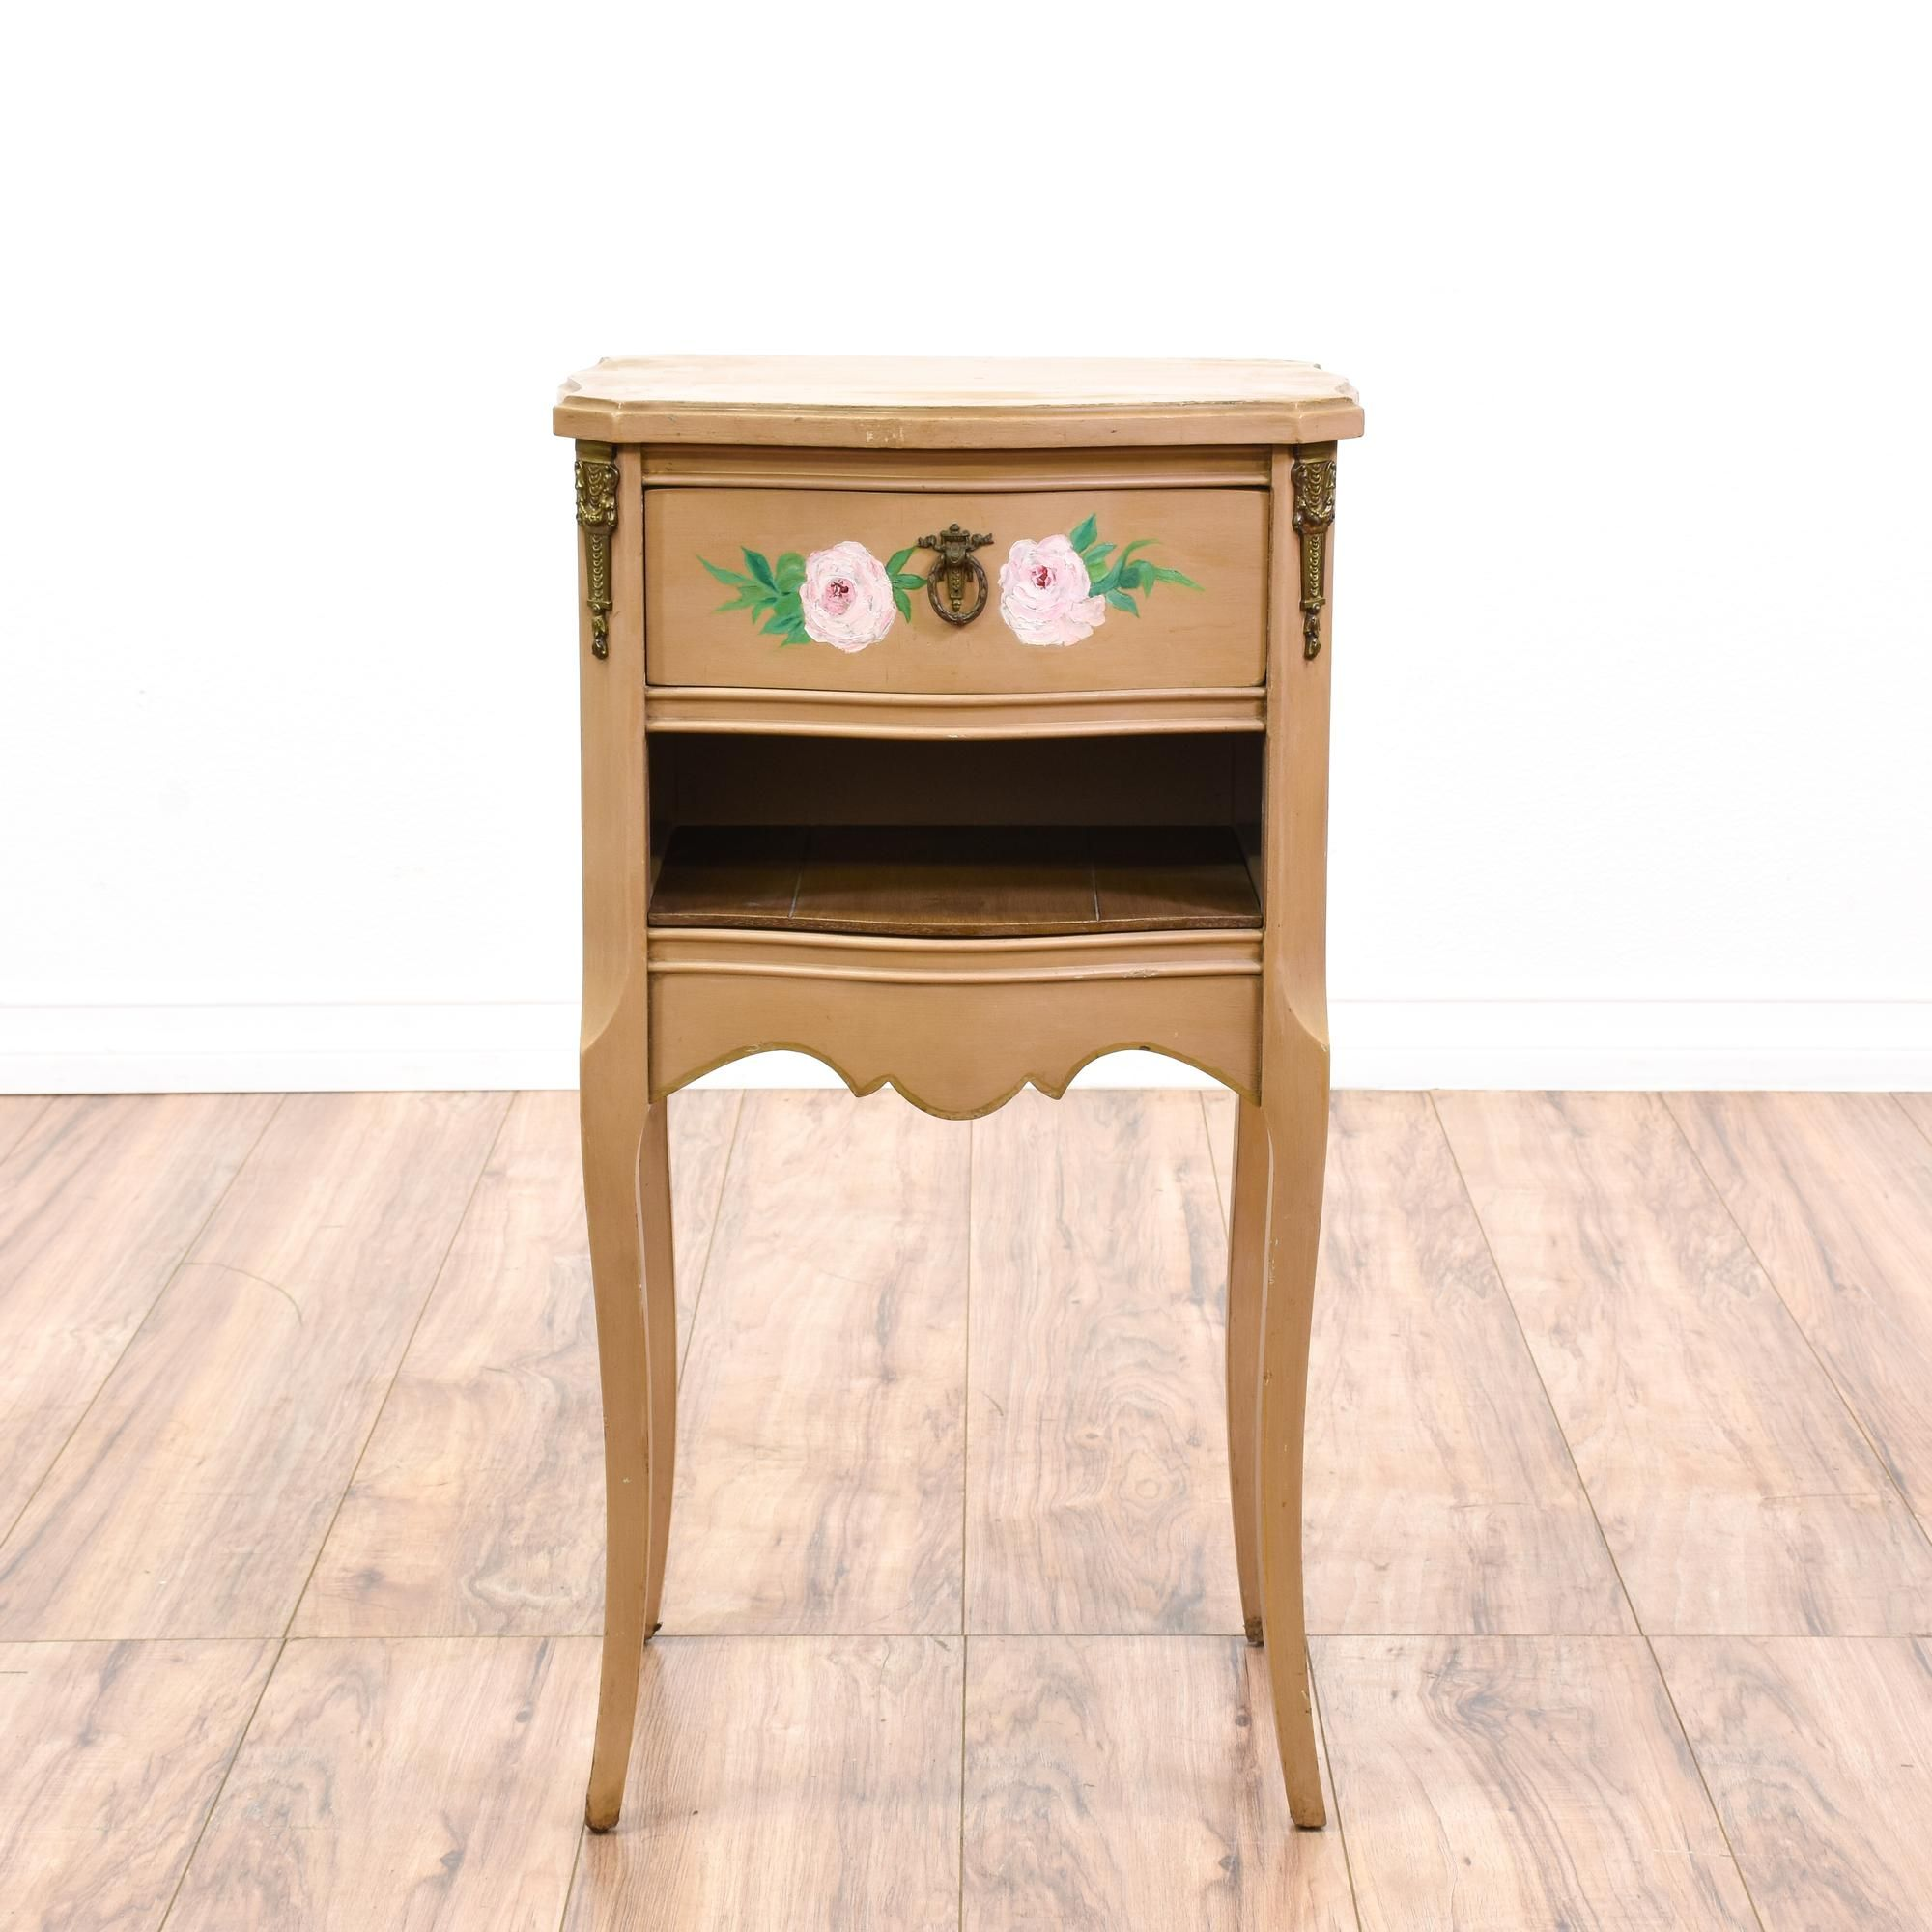 This cottage chic nightstand is featured in a solid wood with a fresh tan paint finish and hand painted floral details. This end table has delicate curved legs, 1 drawer and a bottom cubby cabinet. Adorable bed side table with the perfect amount of storage! #cottagechic #dressers #nightstand #sandiegovintage #vintagefurniture